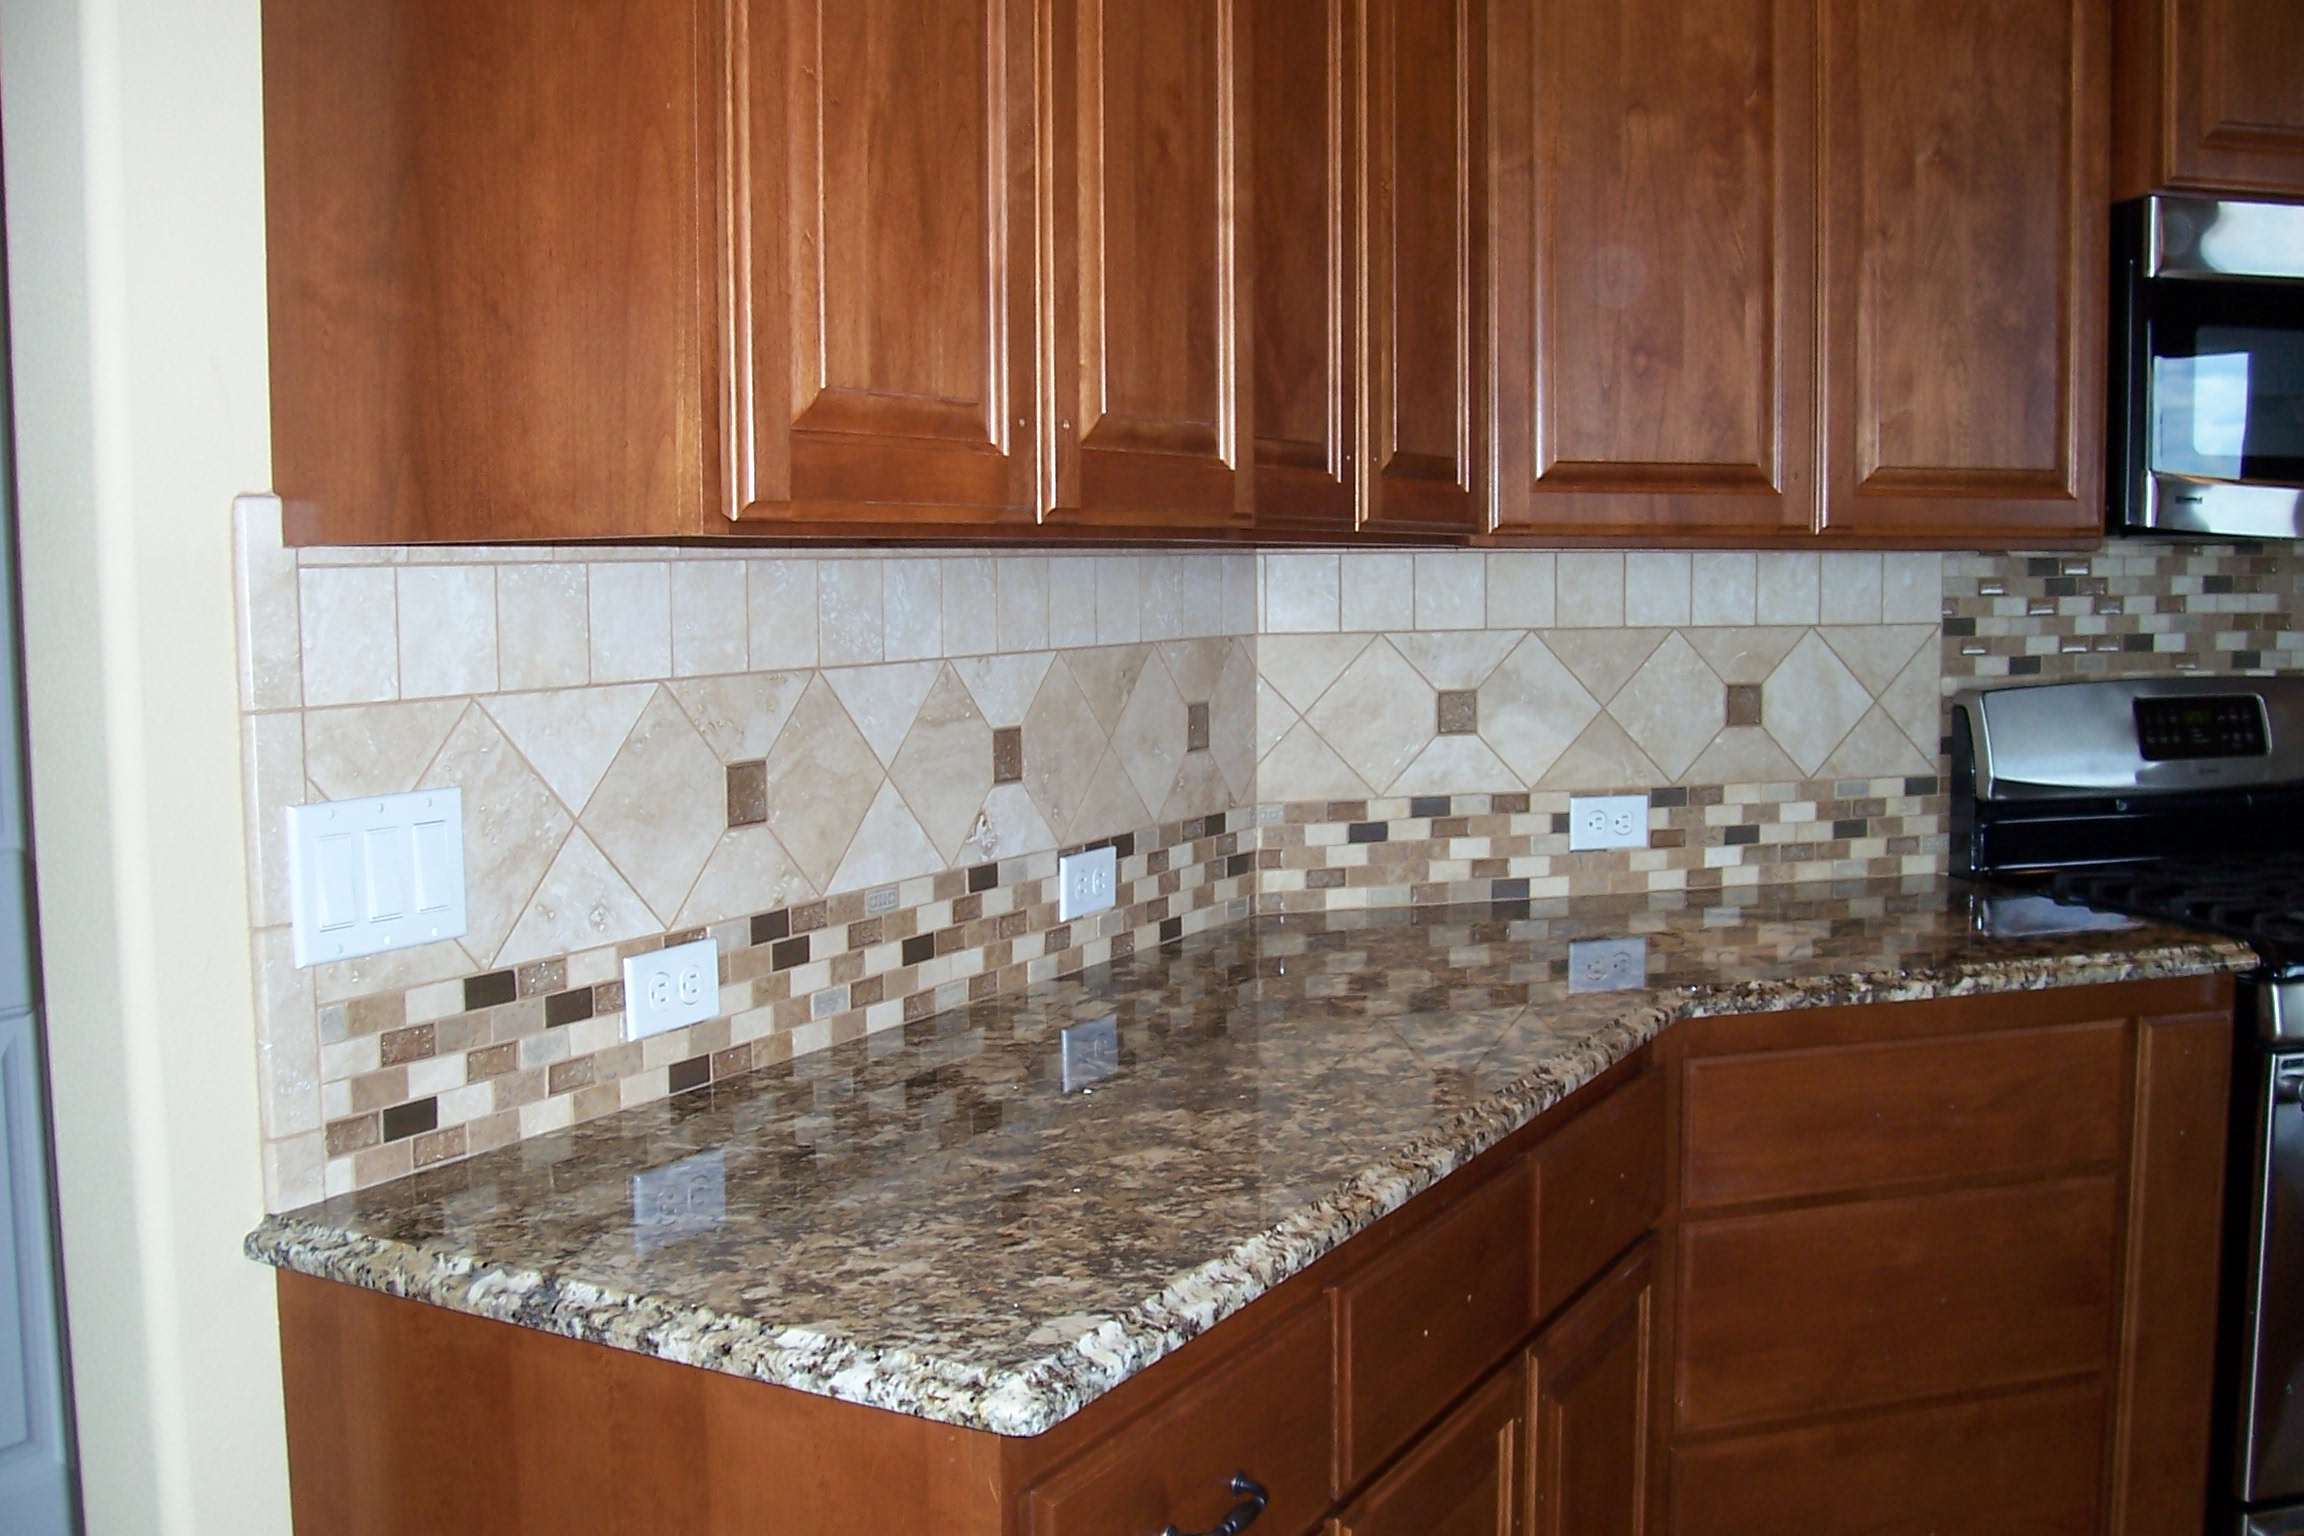 301 moved permanently - Kitchen backsplash ideas ...